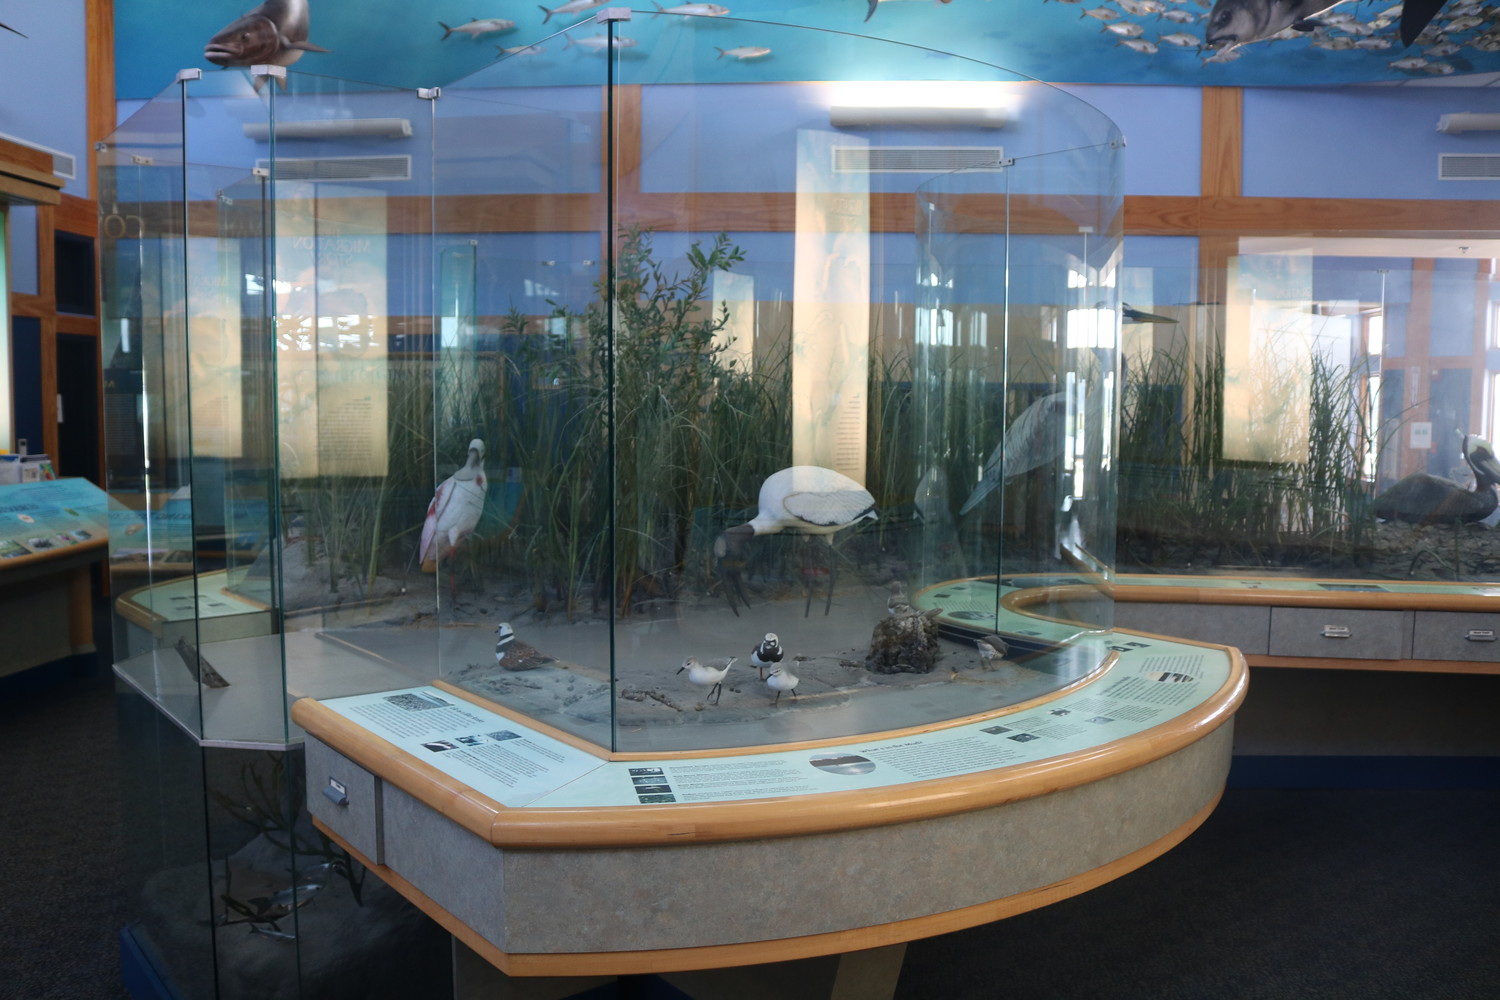 Visitors can enjoy exhibits at the GTM Reserve's Environmental Education Center, located at 505 Guana River Road in Ponte Vedra Beach.